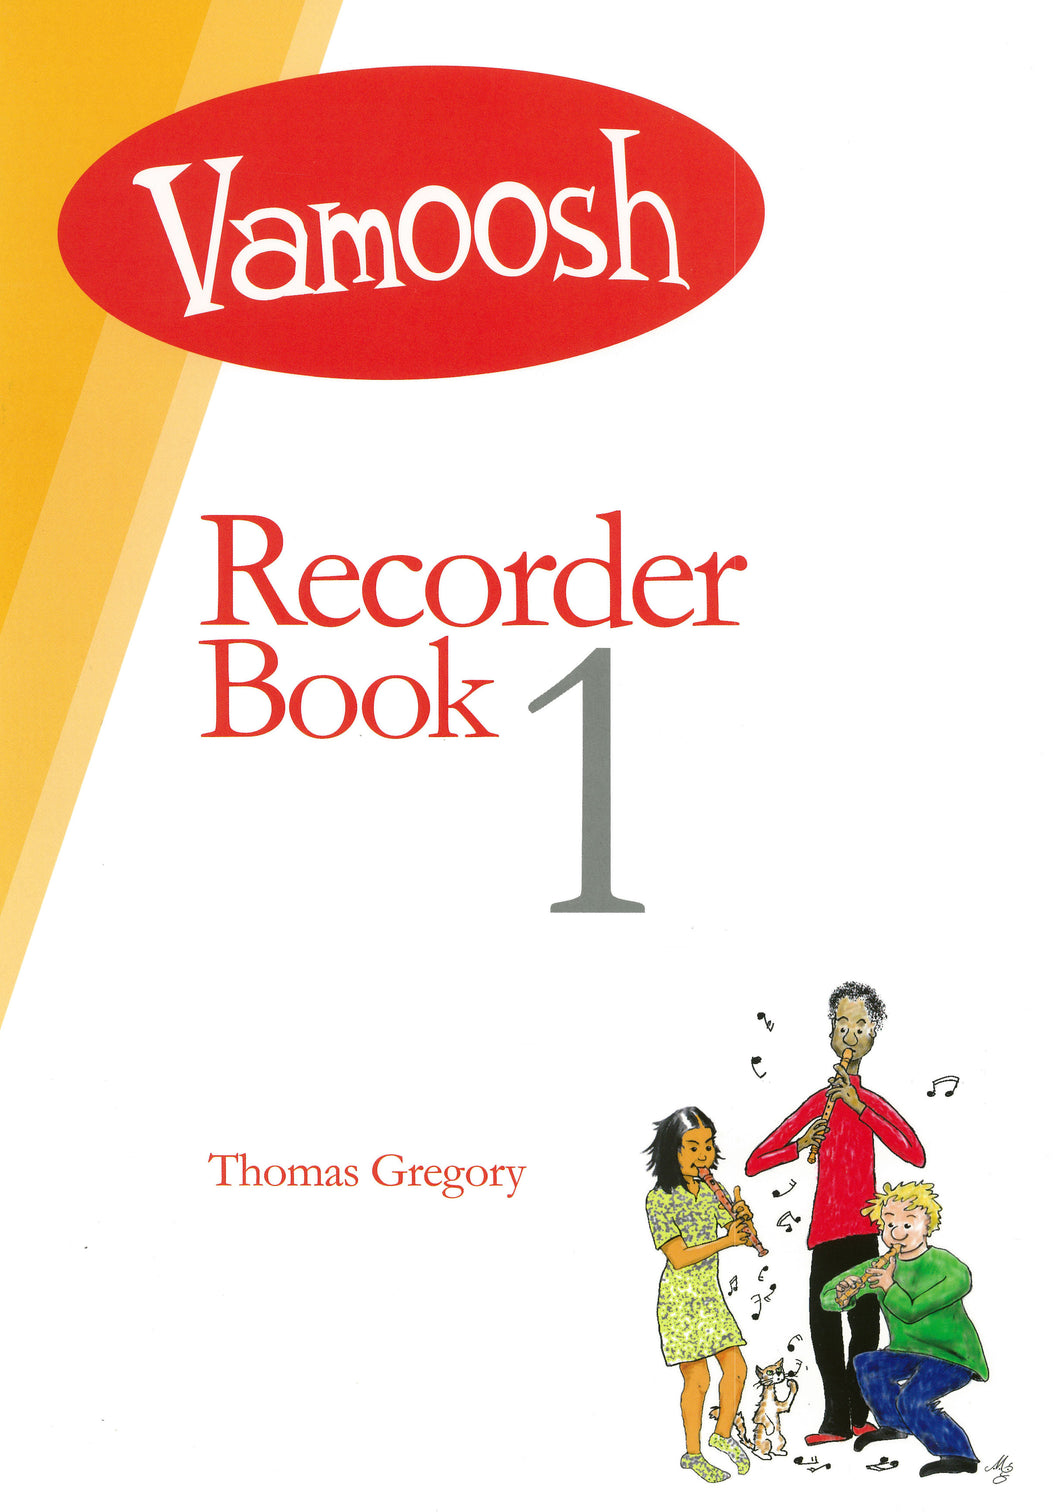 Vamoosh Recorder Book 1, Videos 1 to 26 complete (zipped MP4 files: 1.1GB)